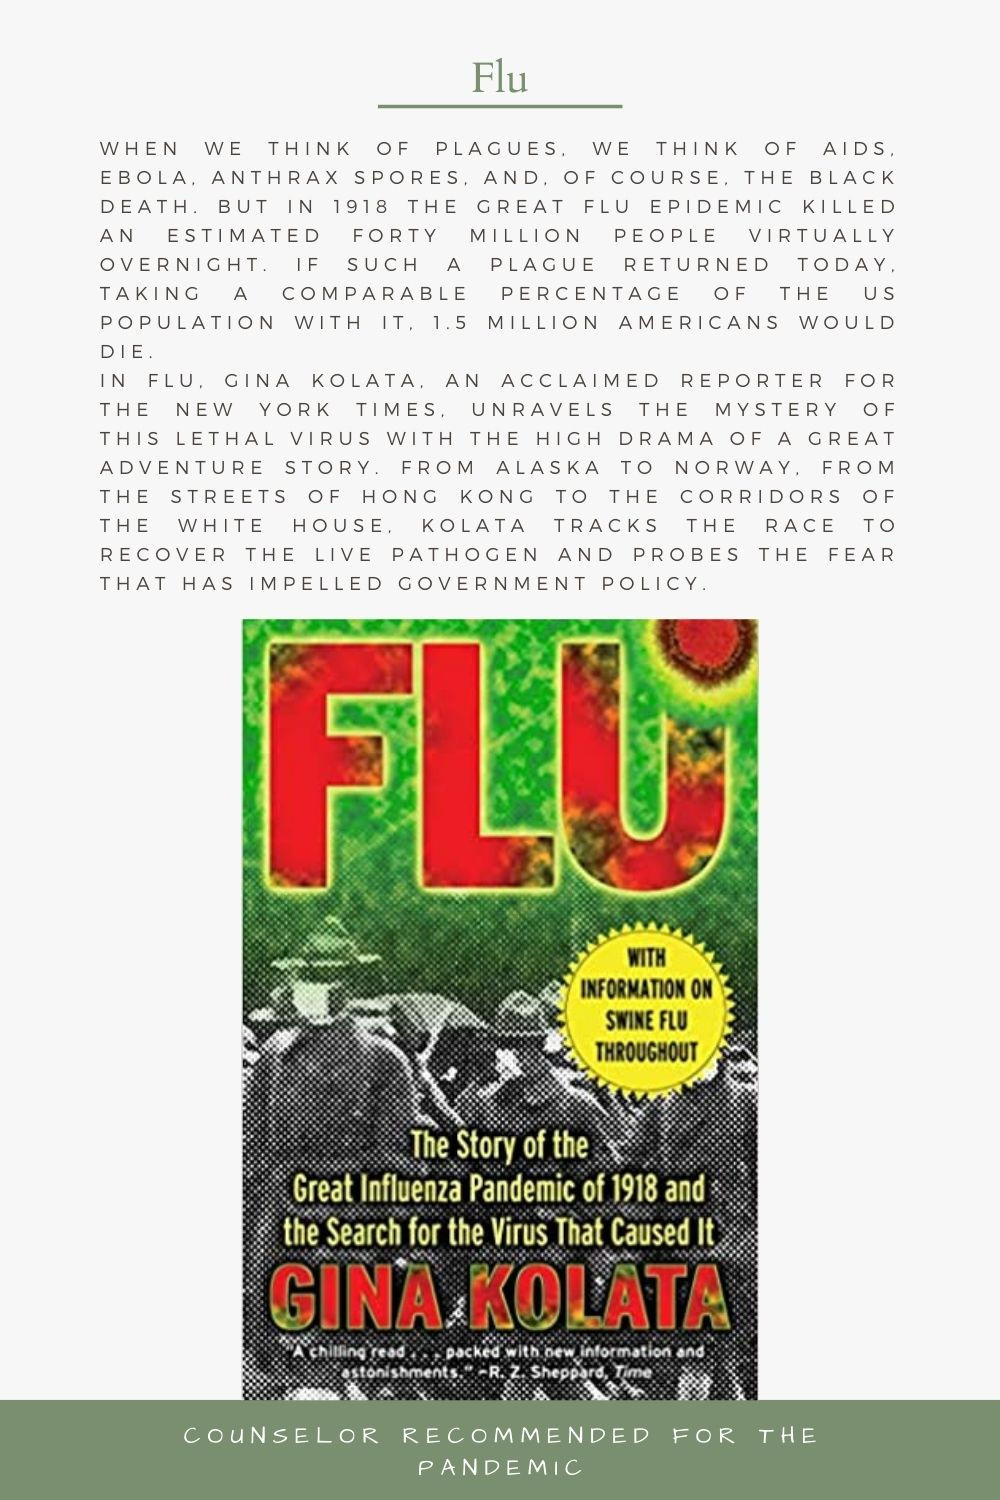 The Story of the Great Influenza Pandemic of 1918 and the Search for the Virus That Caused It